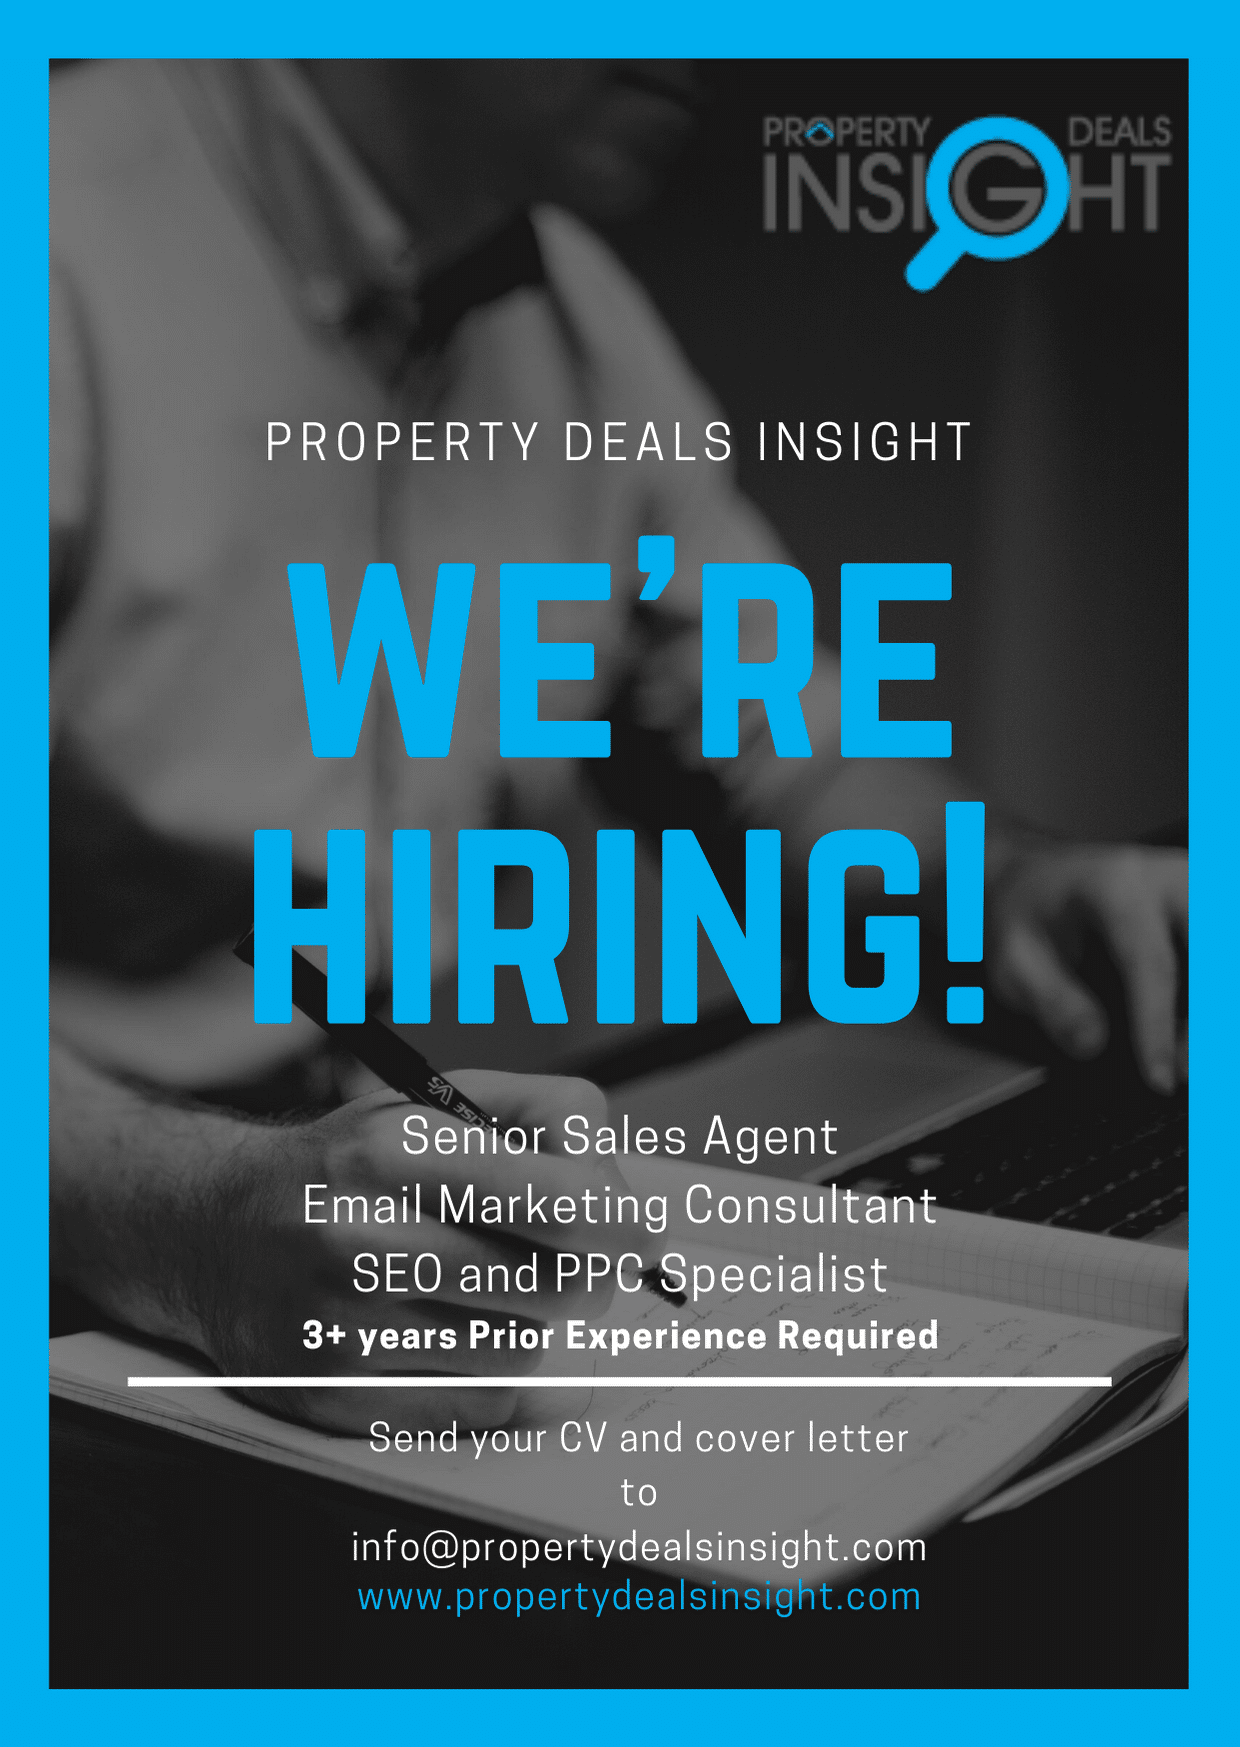 Property Deals Insight is hiring experienced members for our sales and marketing team. If you are someone who can make a real difference then send in your CV and a cover letter to info@propertydealsinsight.com. 3+ Experience required. #salesexpert #marketingexperts #hiringmarketing #propertydealsinsight